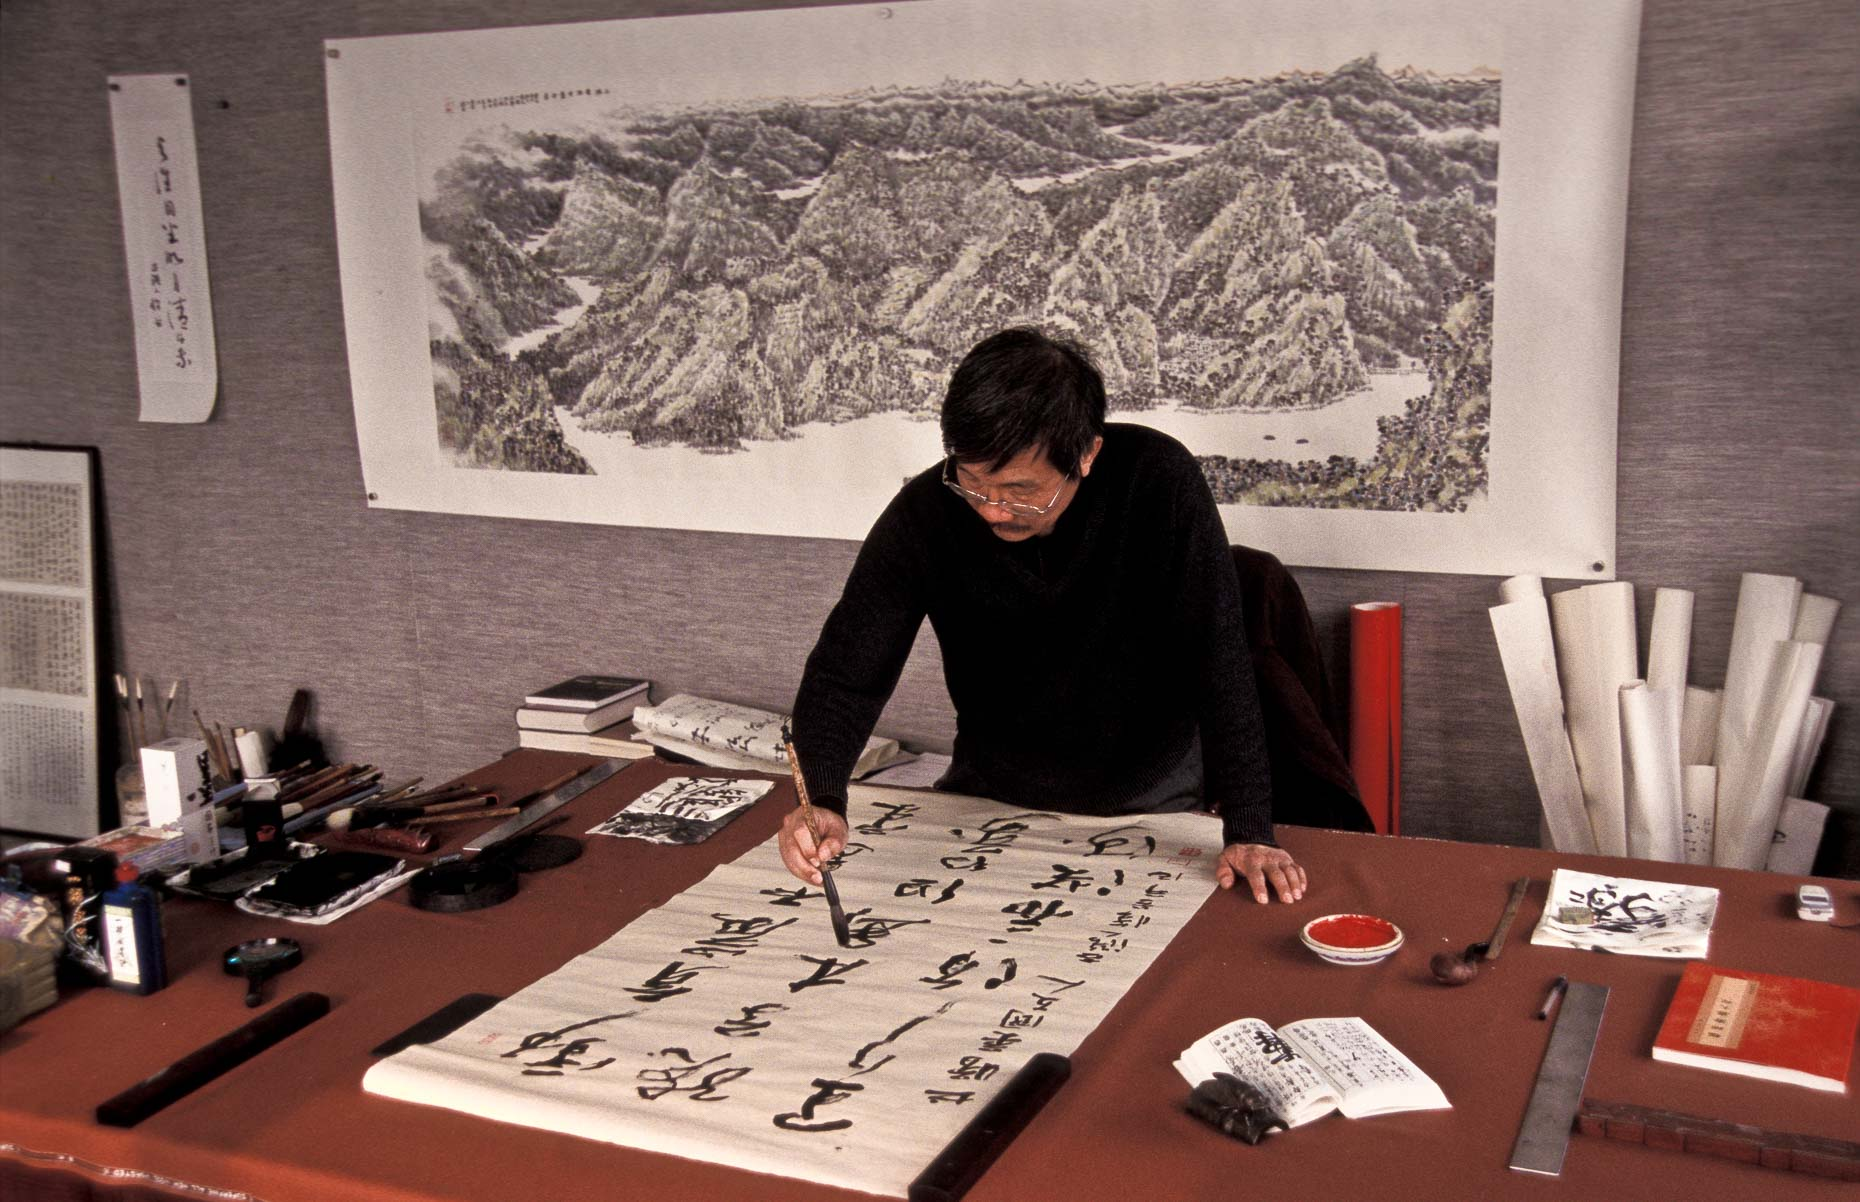 Calligrapher at work in studio